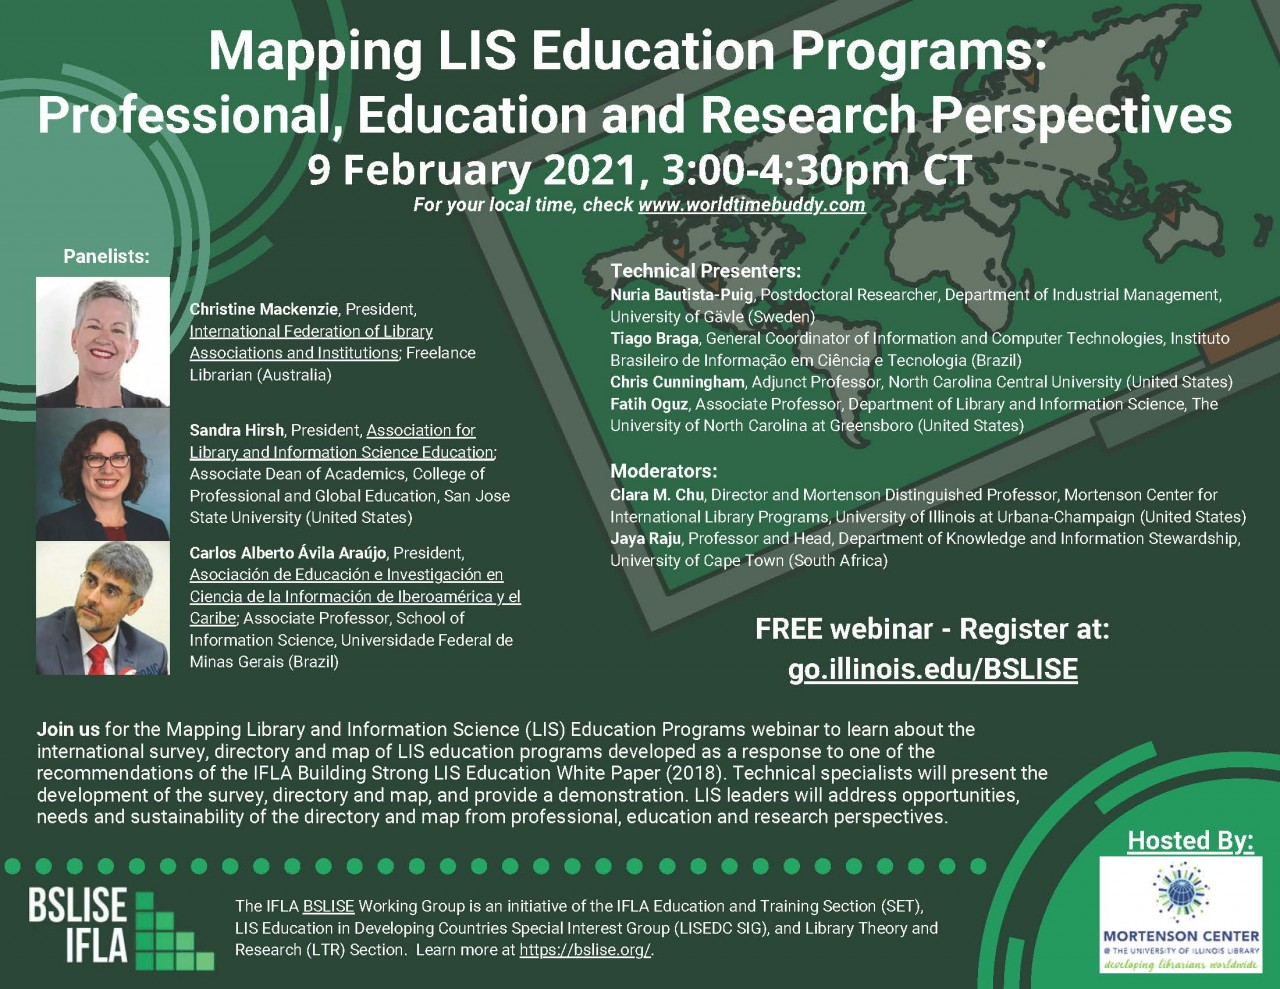 Mapping LIS Education Webinar February 9, 2021 graphic